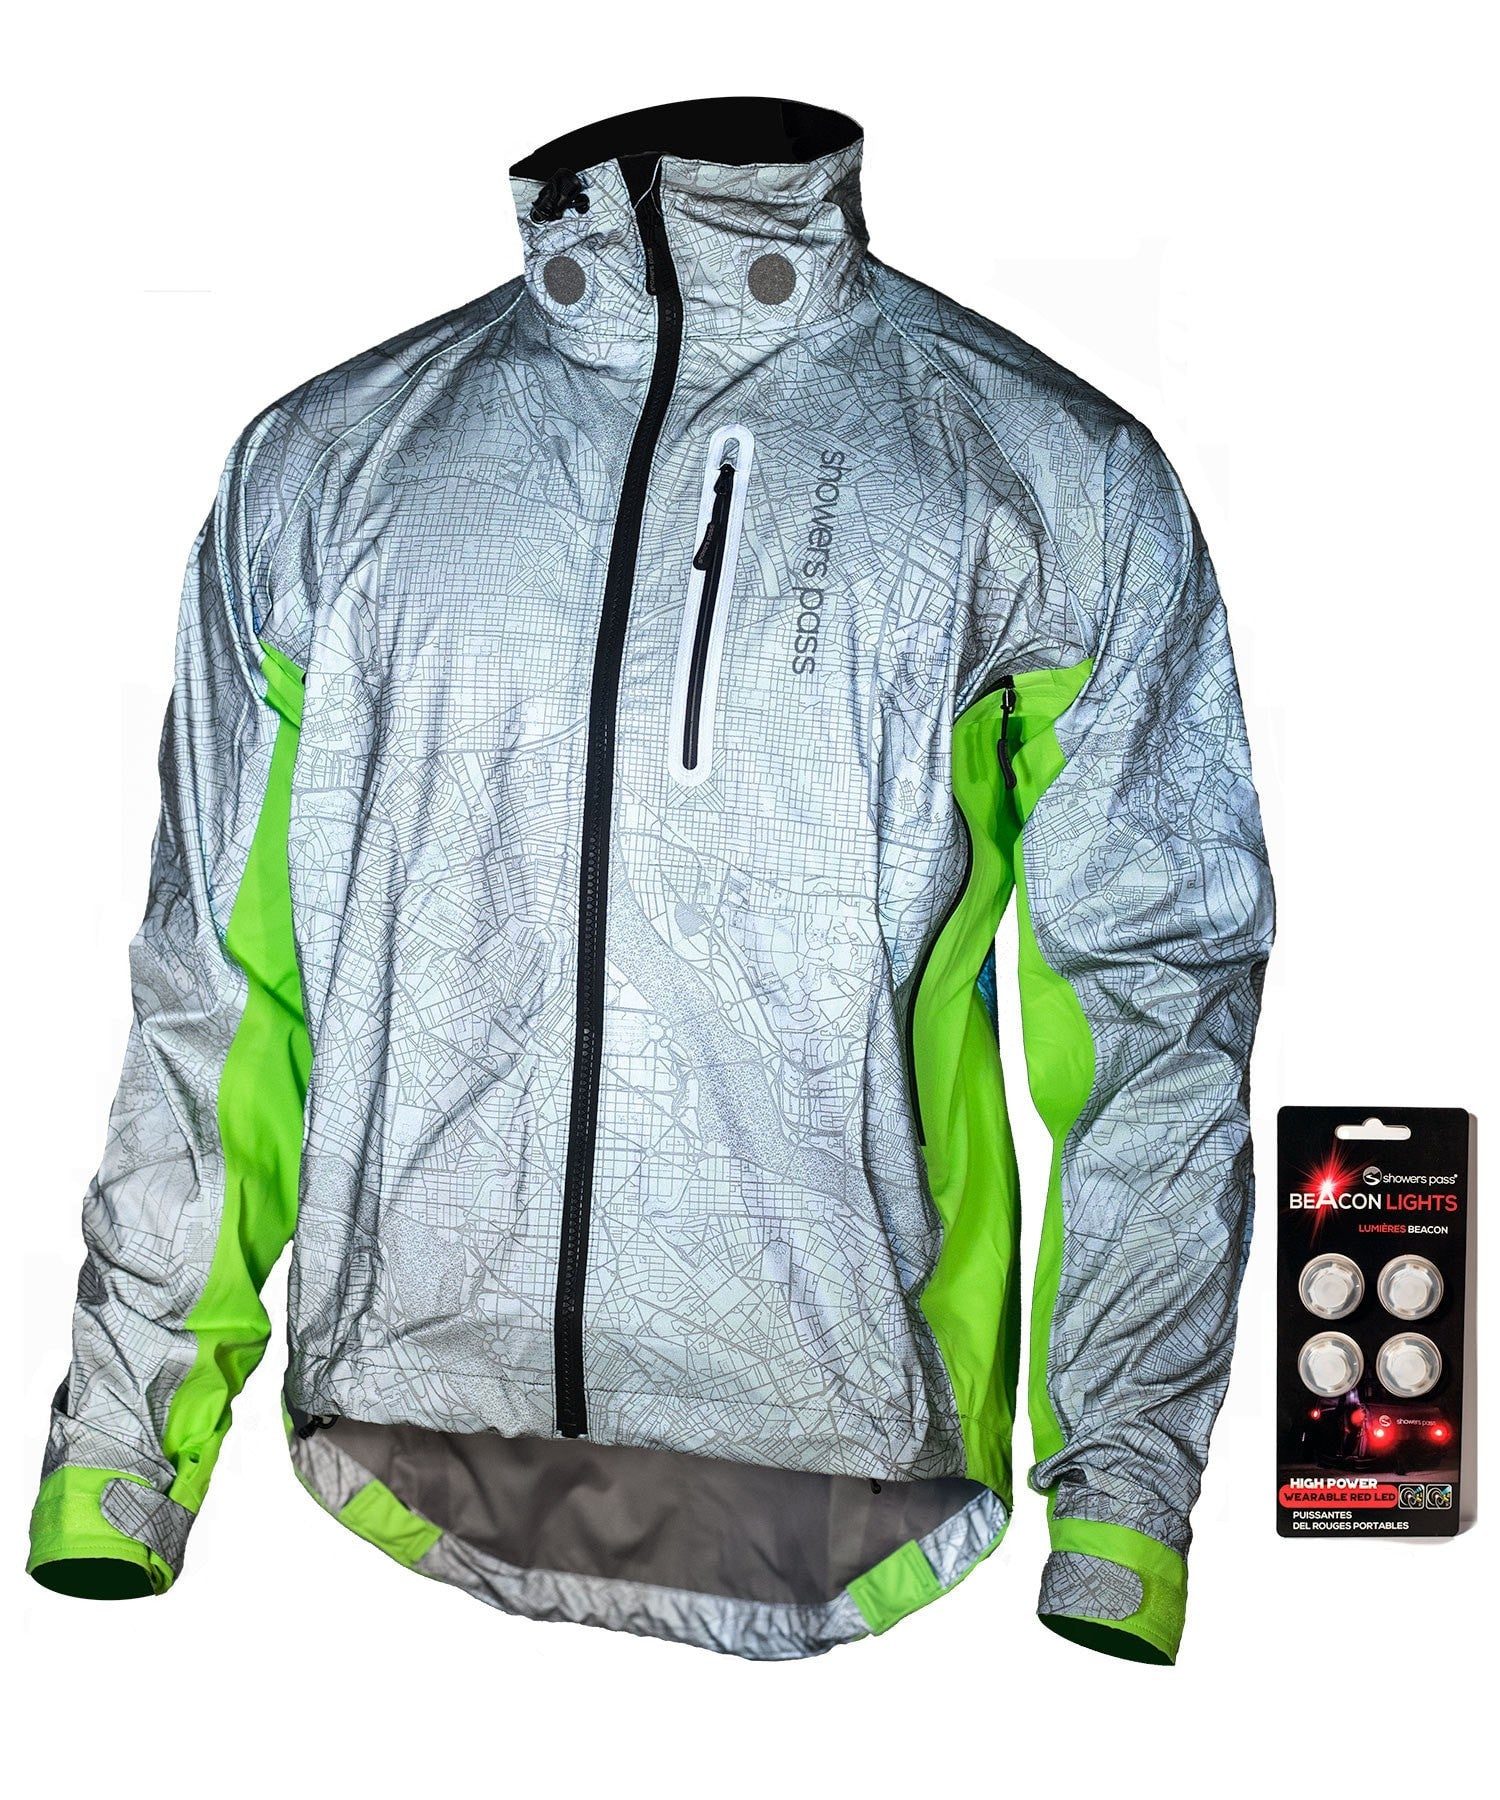 Men's Hi-Vis Torch E-Bike Jacket with Beacon Lights